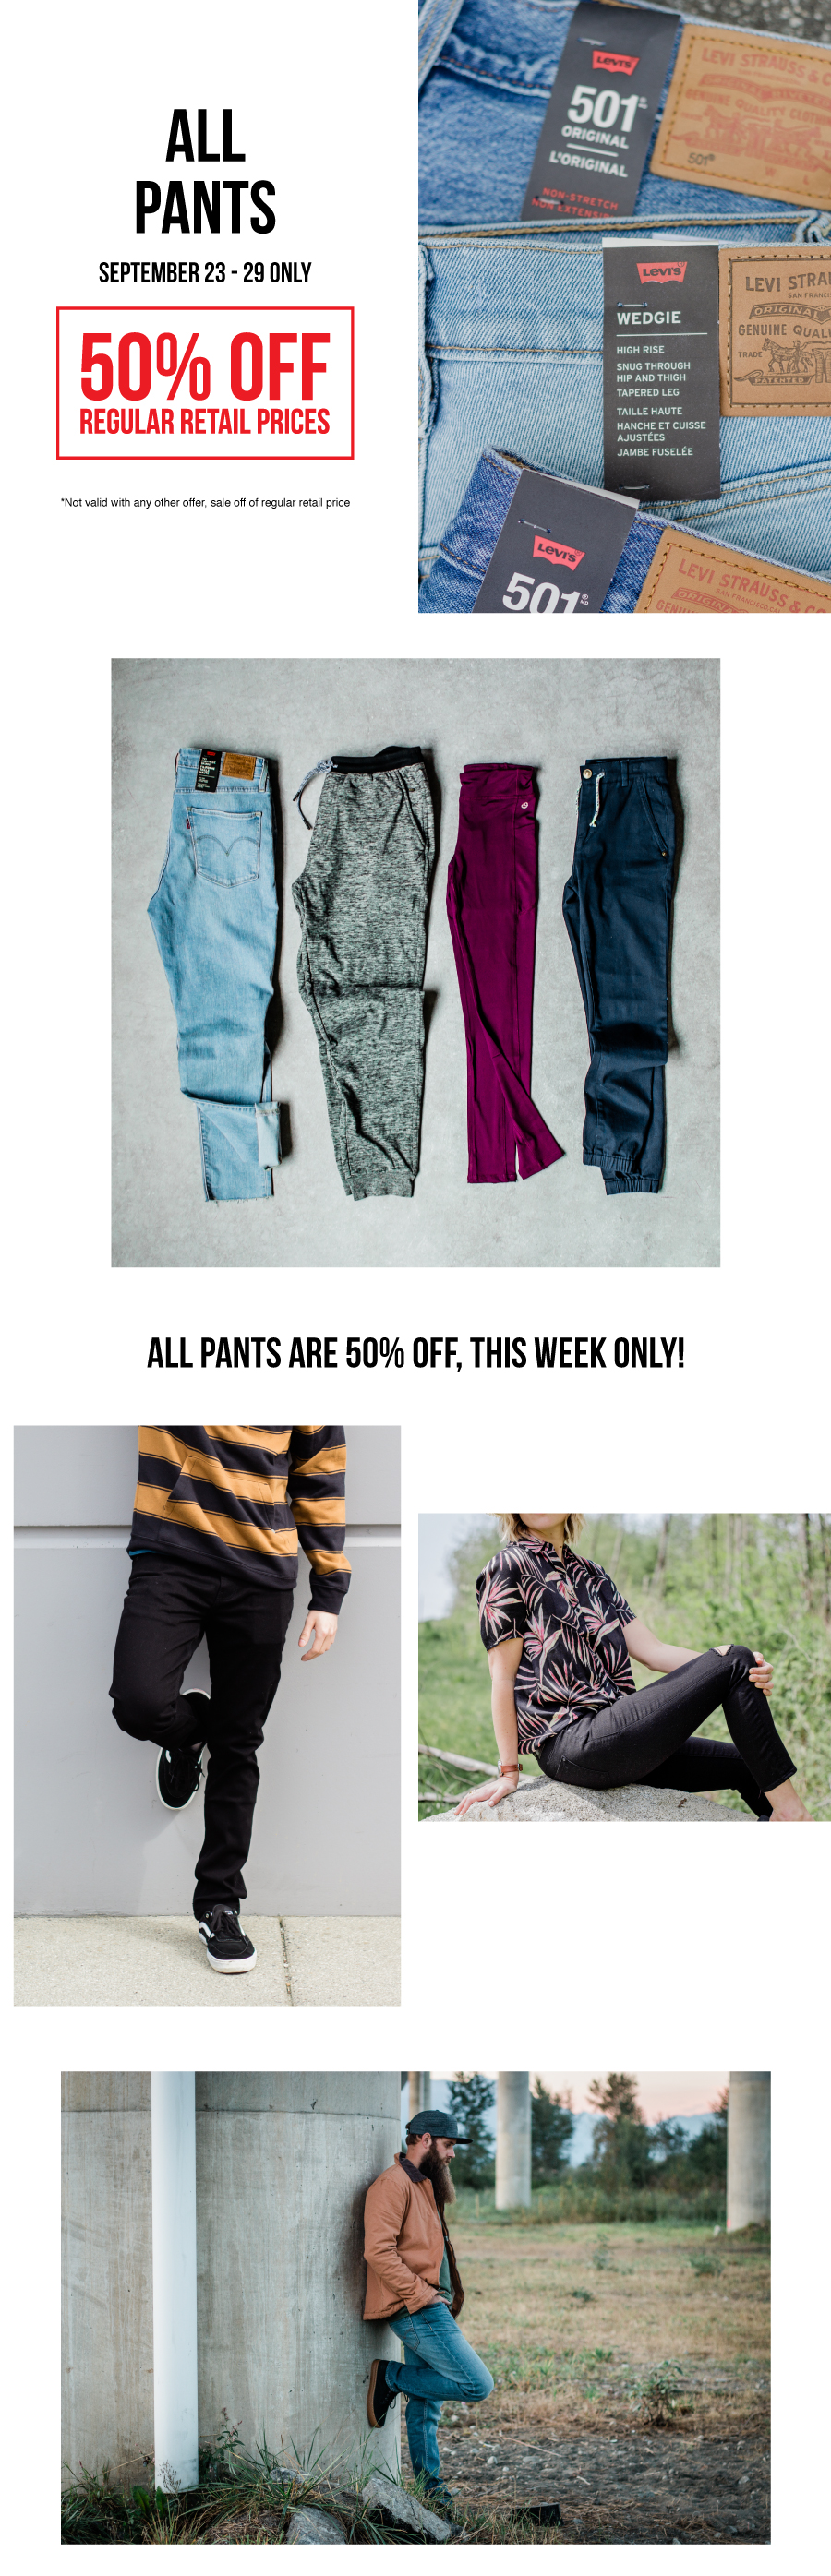 Deal of the week, september 23 - 29 at premium label outlet